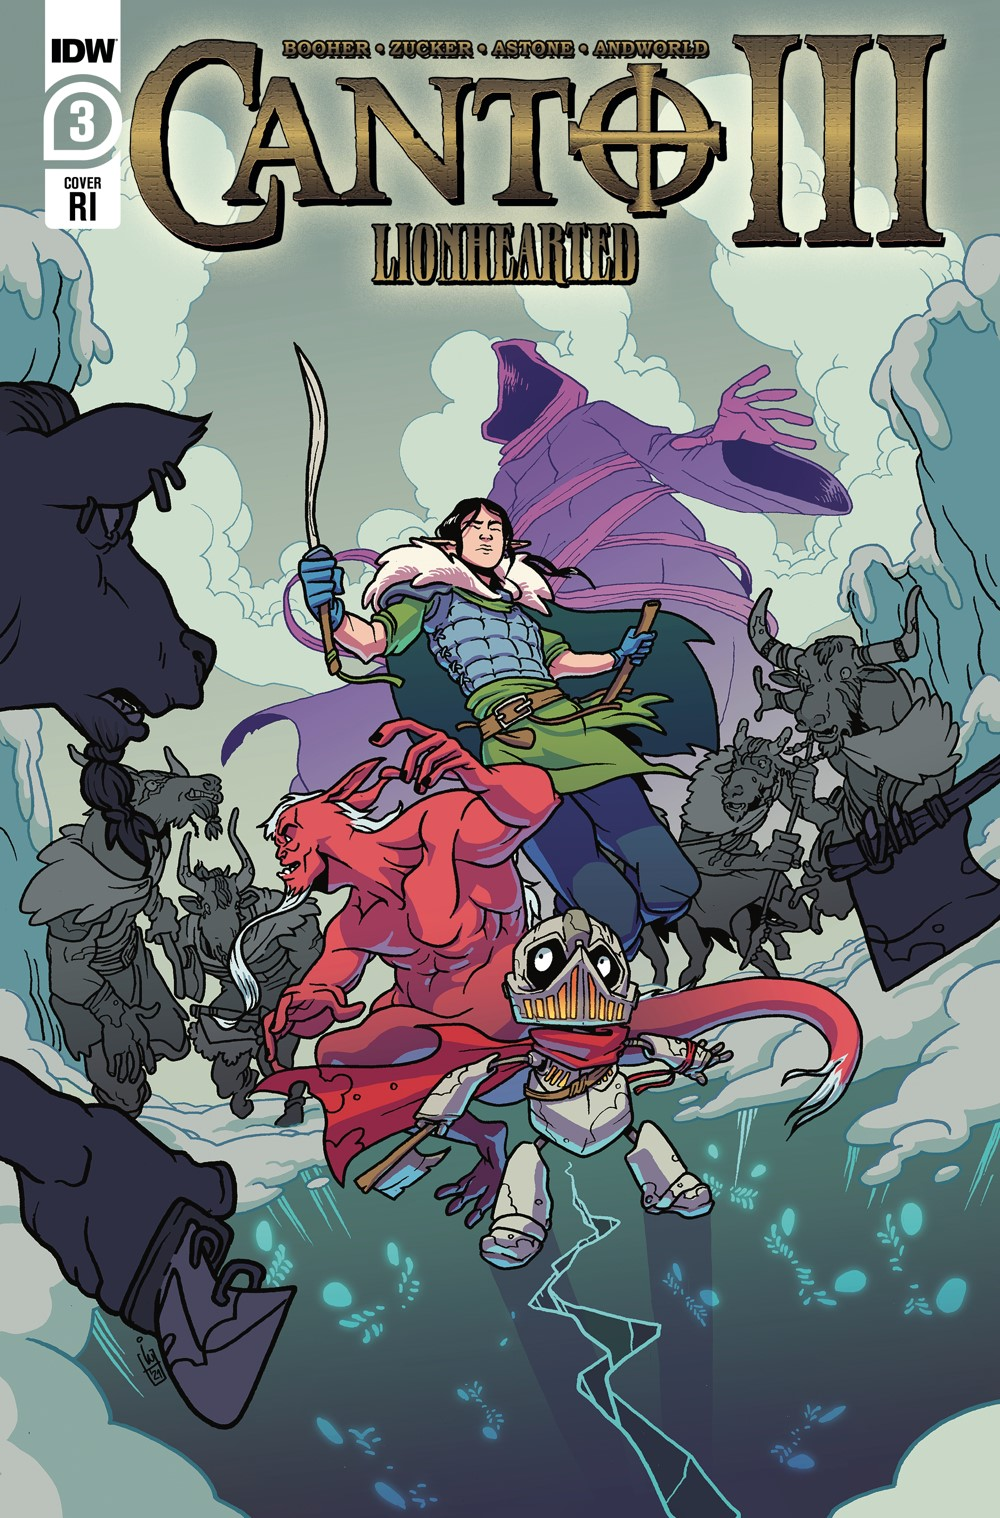 Canto-Lionhearted03_cvrRI ComicList: IDW Publishing New Releases for 09/08/2021